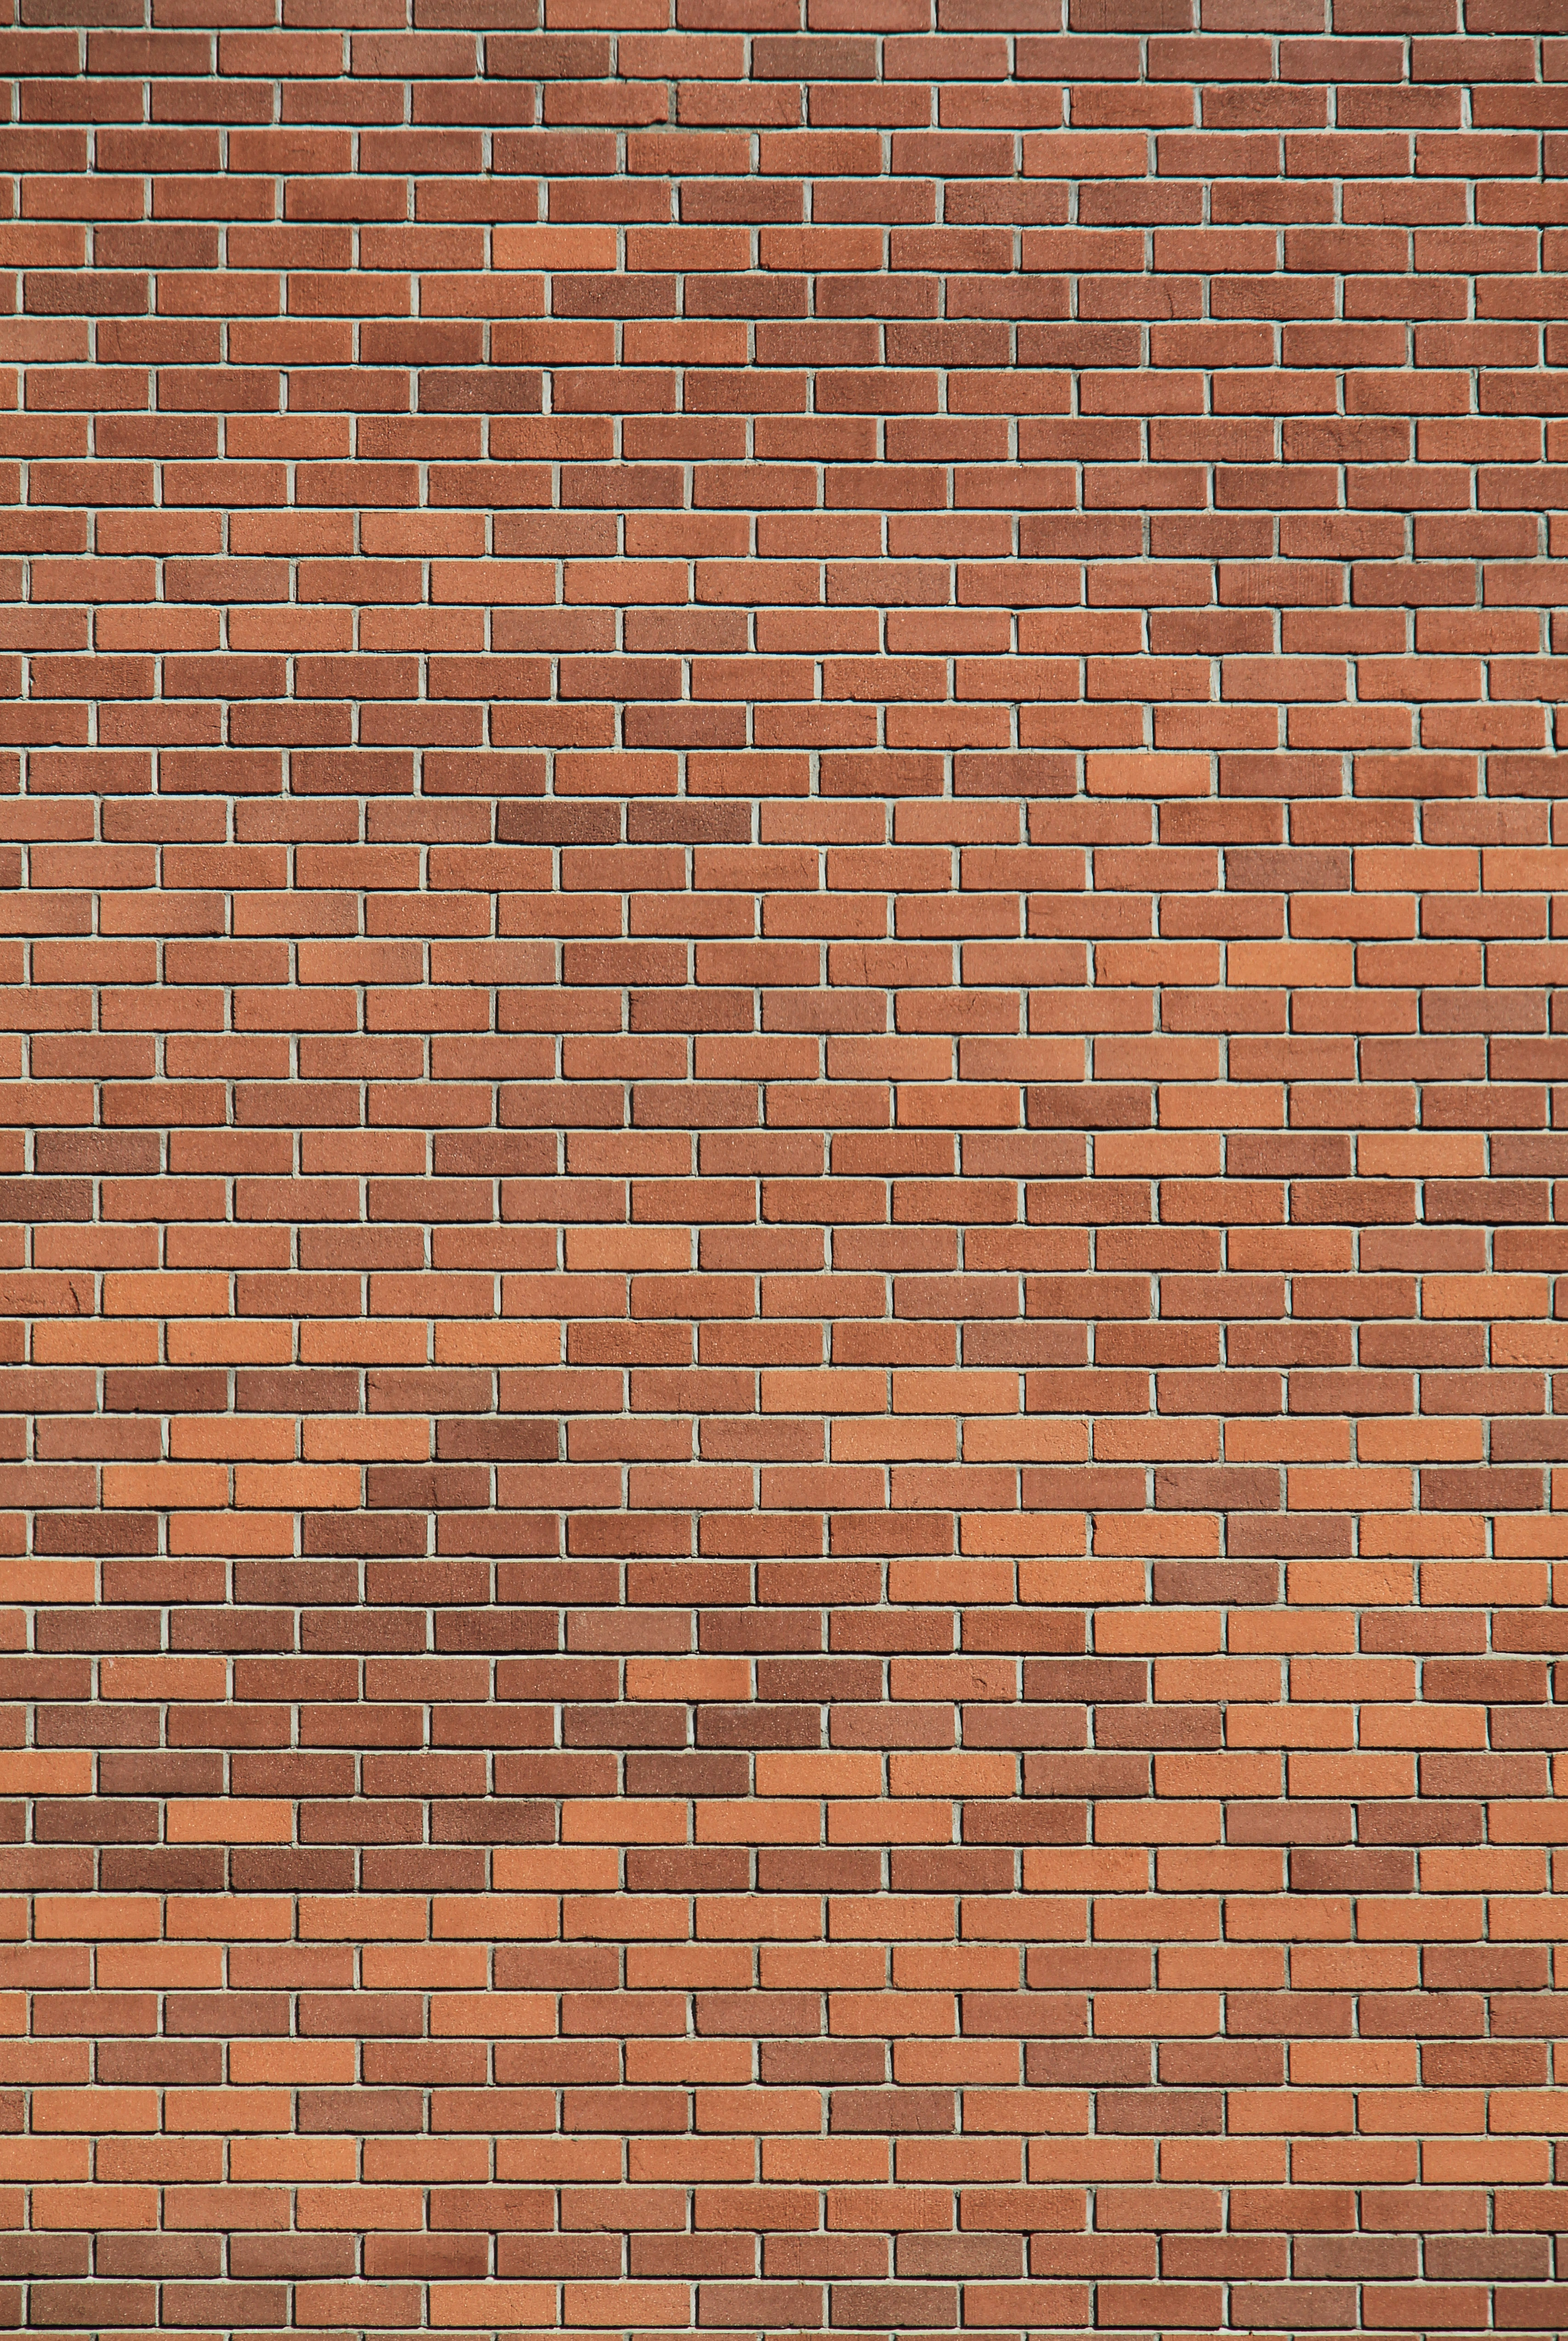 brick texture large resolution wall building architecture stock ...